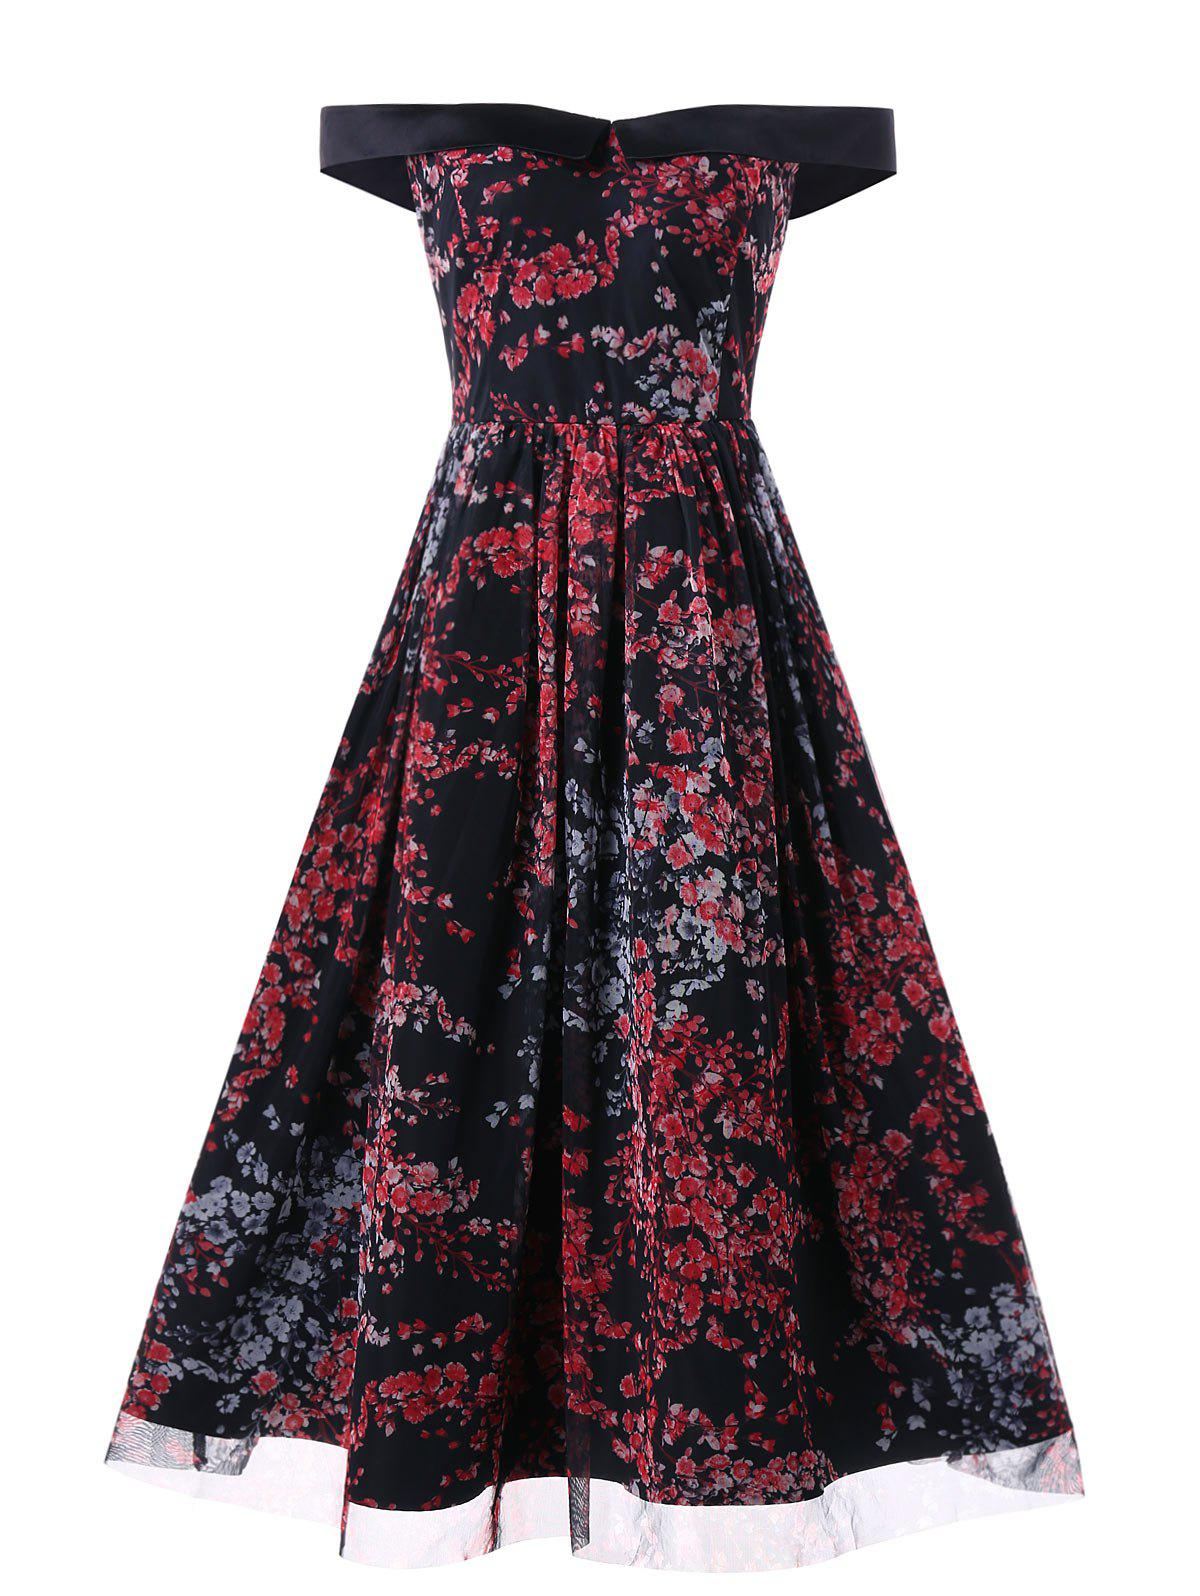 Off The Shoulder Floral Rockabilly Style Vintage Dress - multicolor L